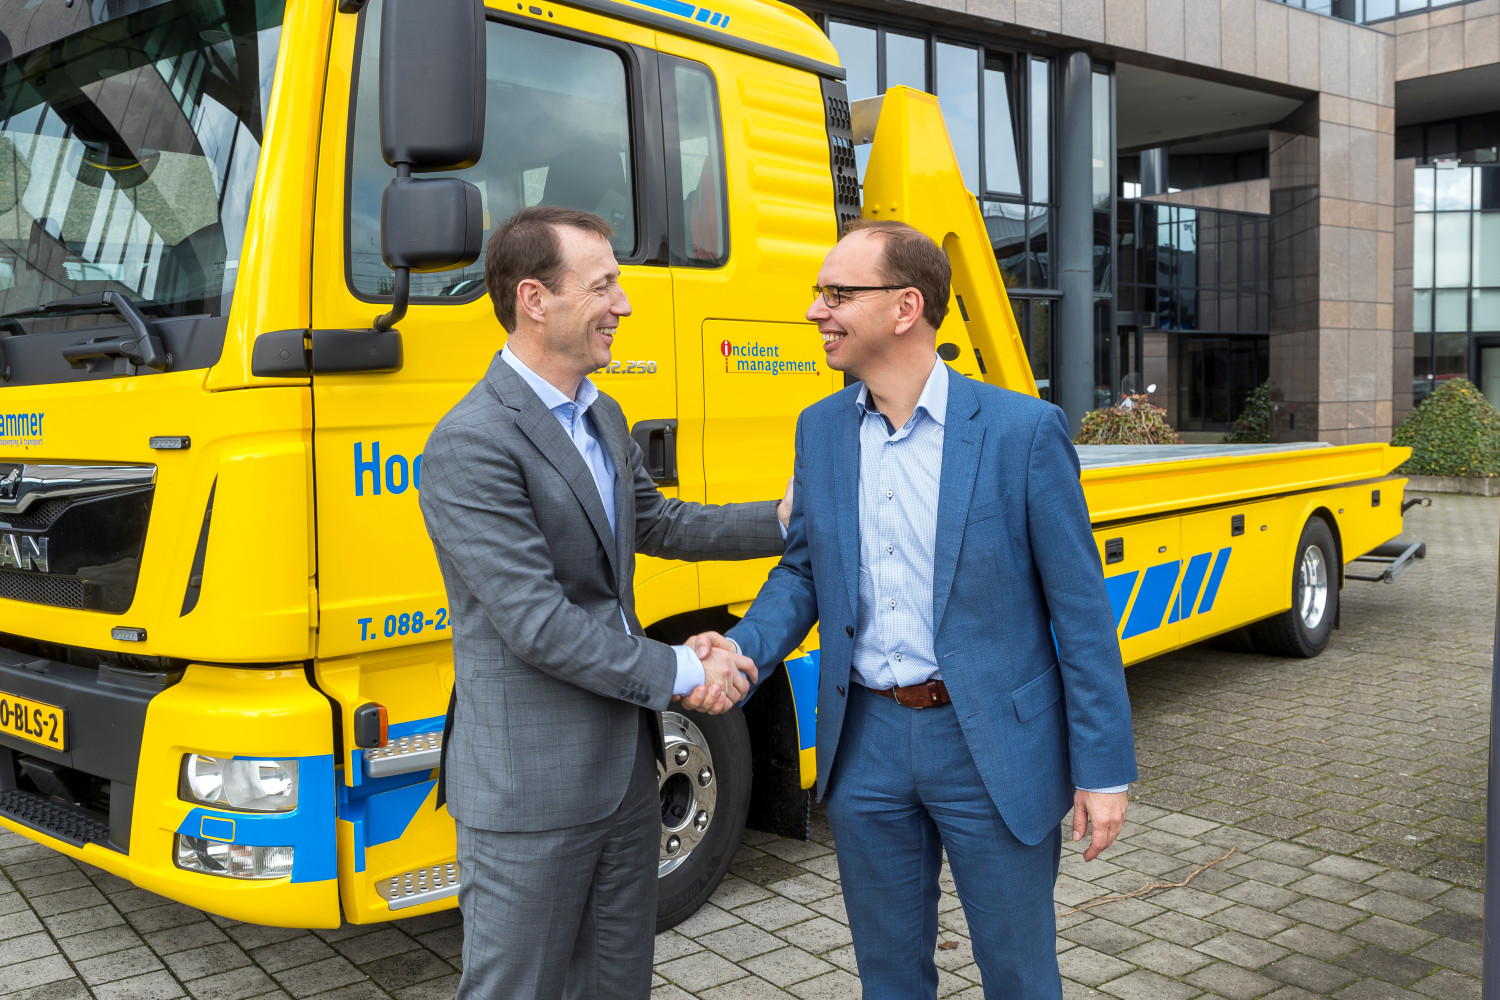 Ryan Florijn (R), chair of Stichting IMN, congratulates Hans Coffeng, managing director of CED, on the transfer of the LCM, in front of the offices of SOS International in Amsterdam-Zuidoost on 5 November 2019.